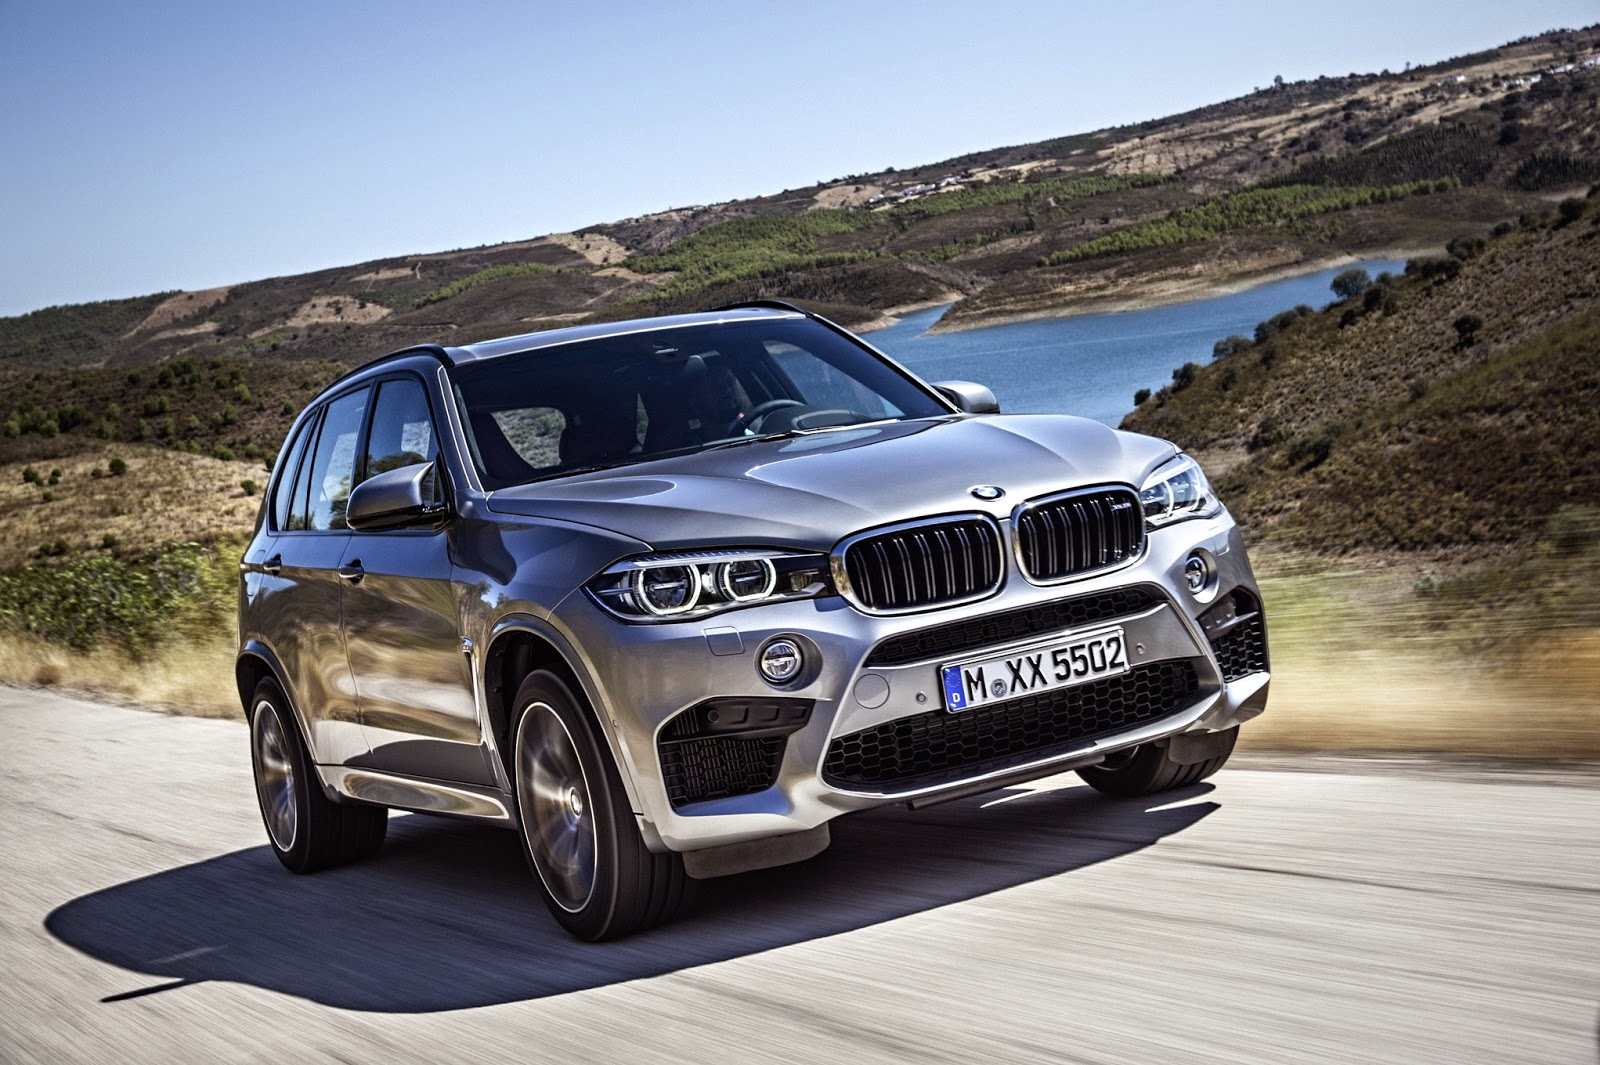 In addition to the modern design and improved systems 2015 bmw x5 m will be equipped with new powerful engine this one athlete will have a new 4 4 l twin